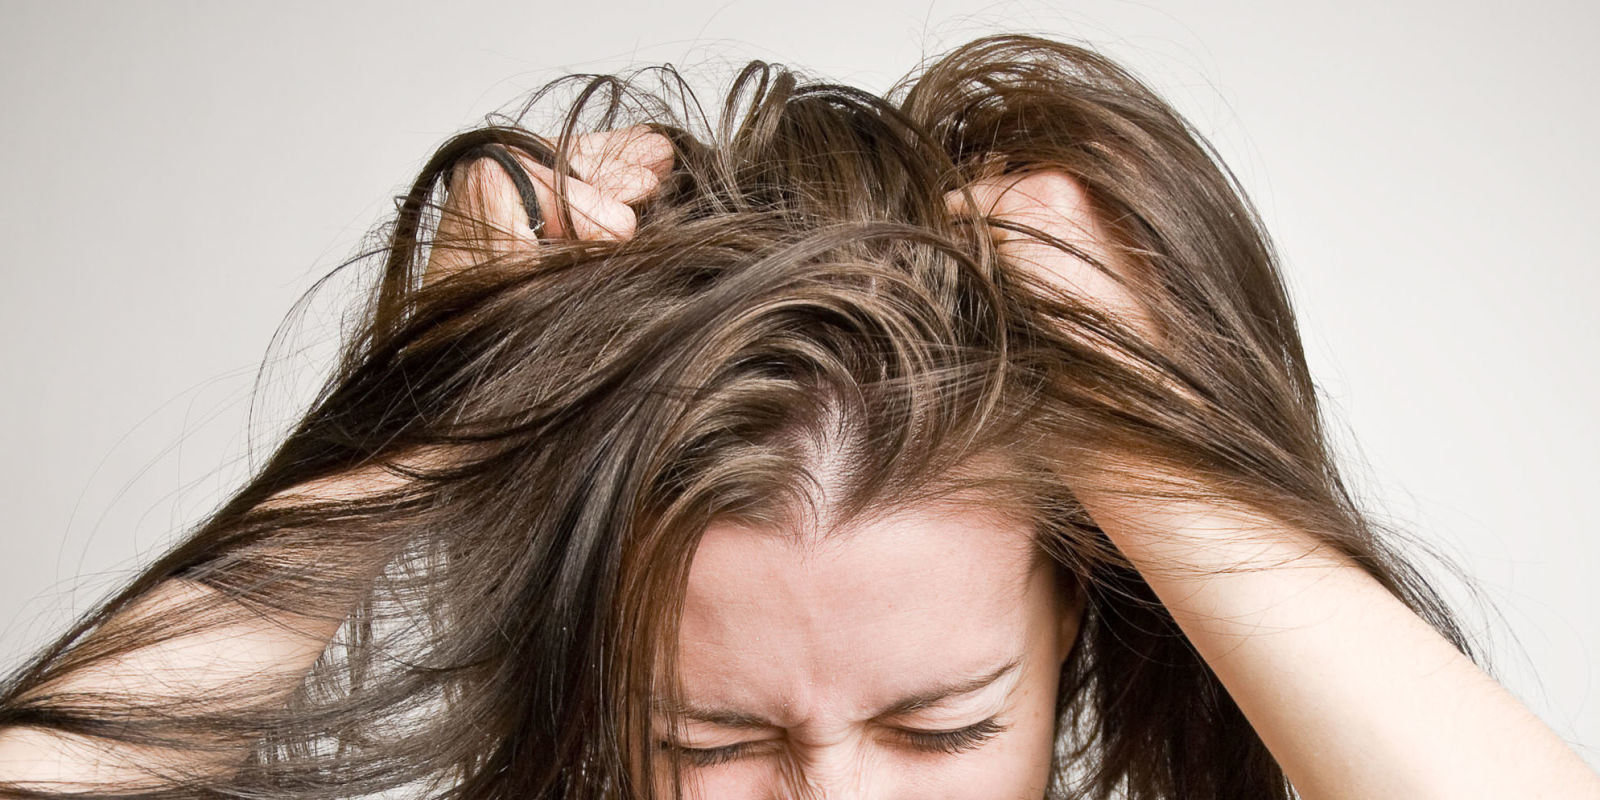 Itchy bald patches on scalp